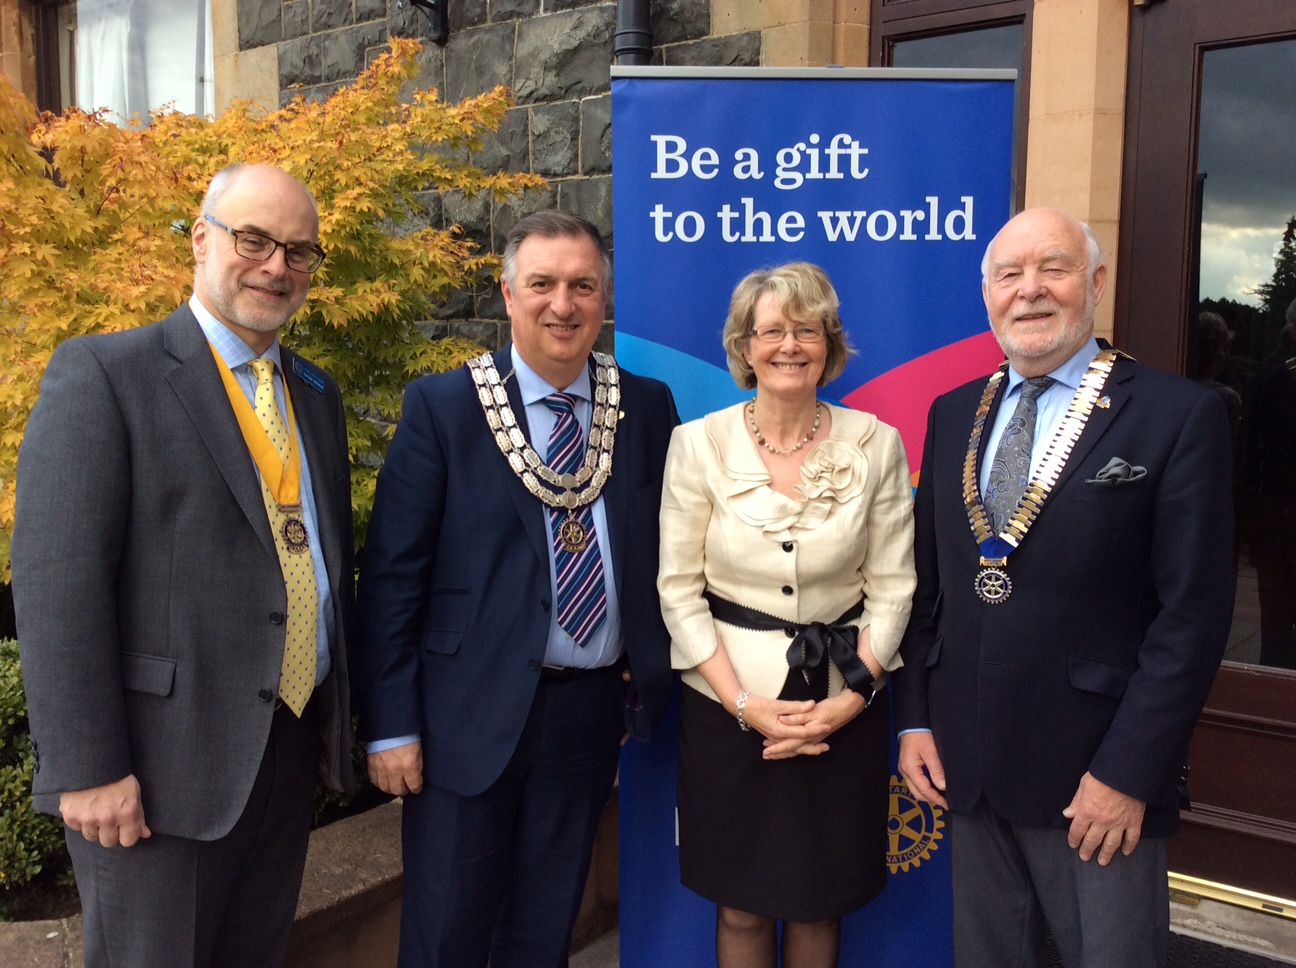 DG Declan and his wife Pat with President Gary and VP Donald